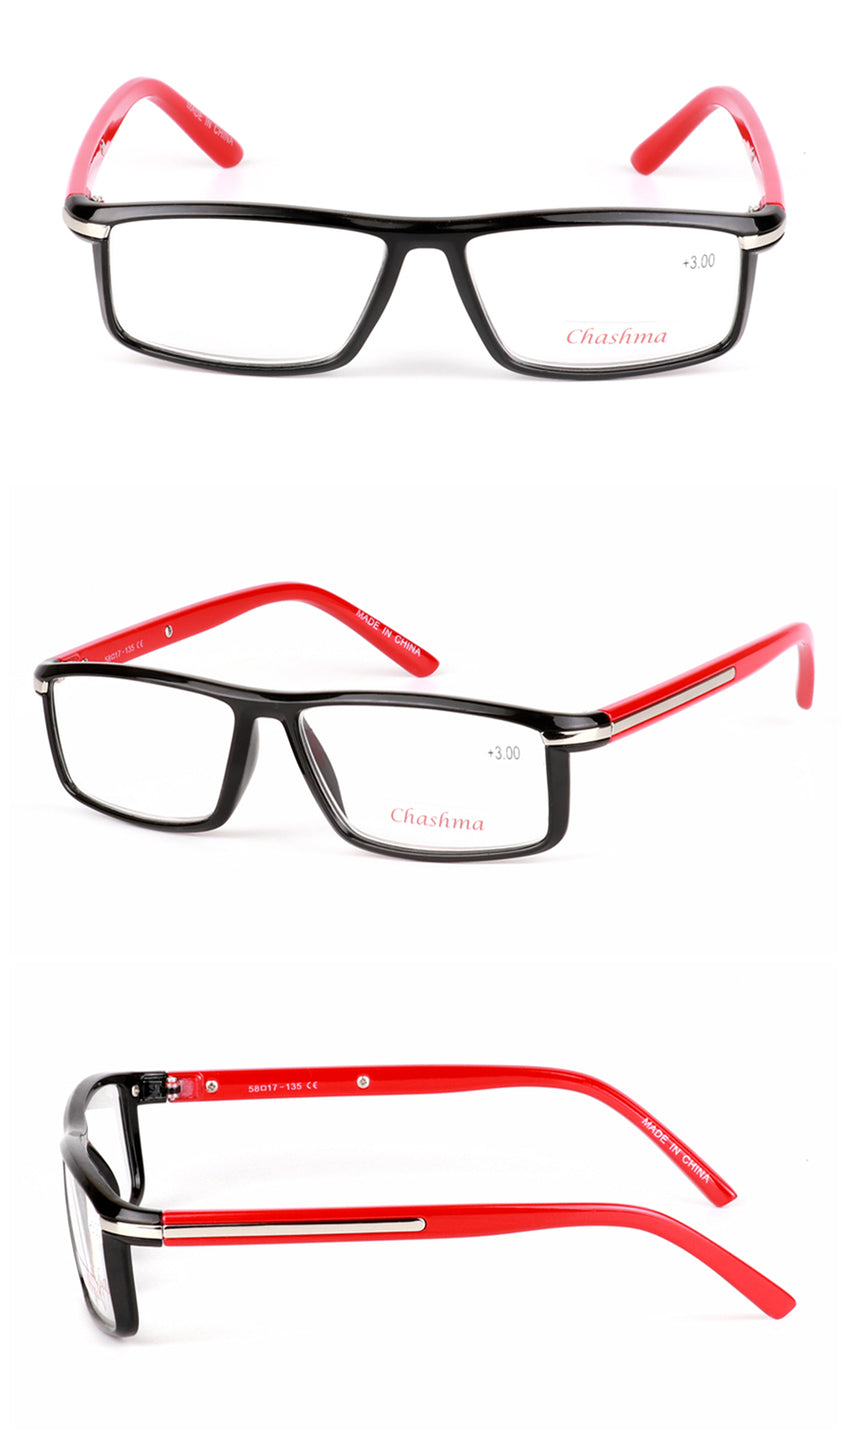 Excellent Quality Presbyopia Men Eyeglasses Unisex Casual Presbyopic Reading Glasses 1.0,1.5,2.0,2.5,3.0,3.5